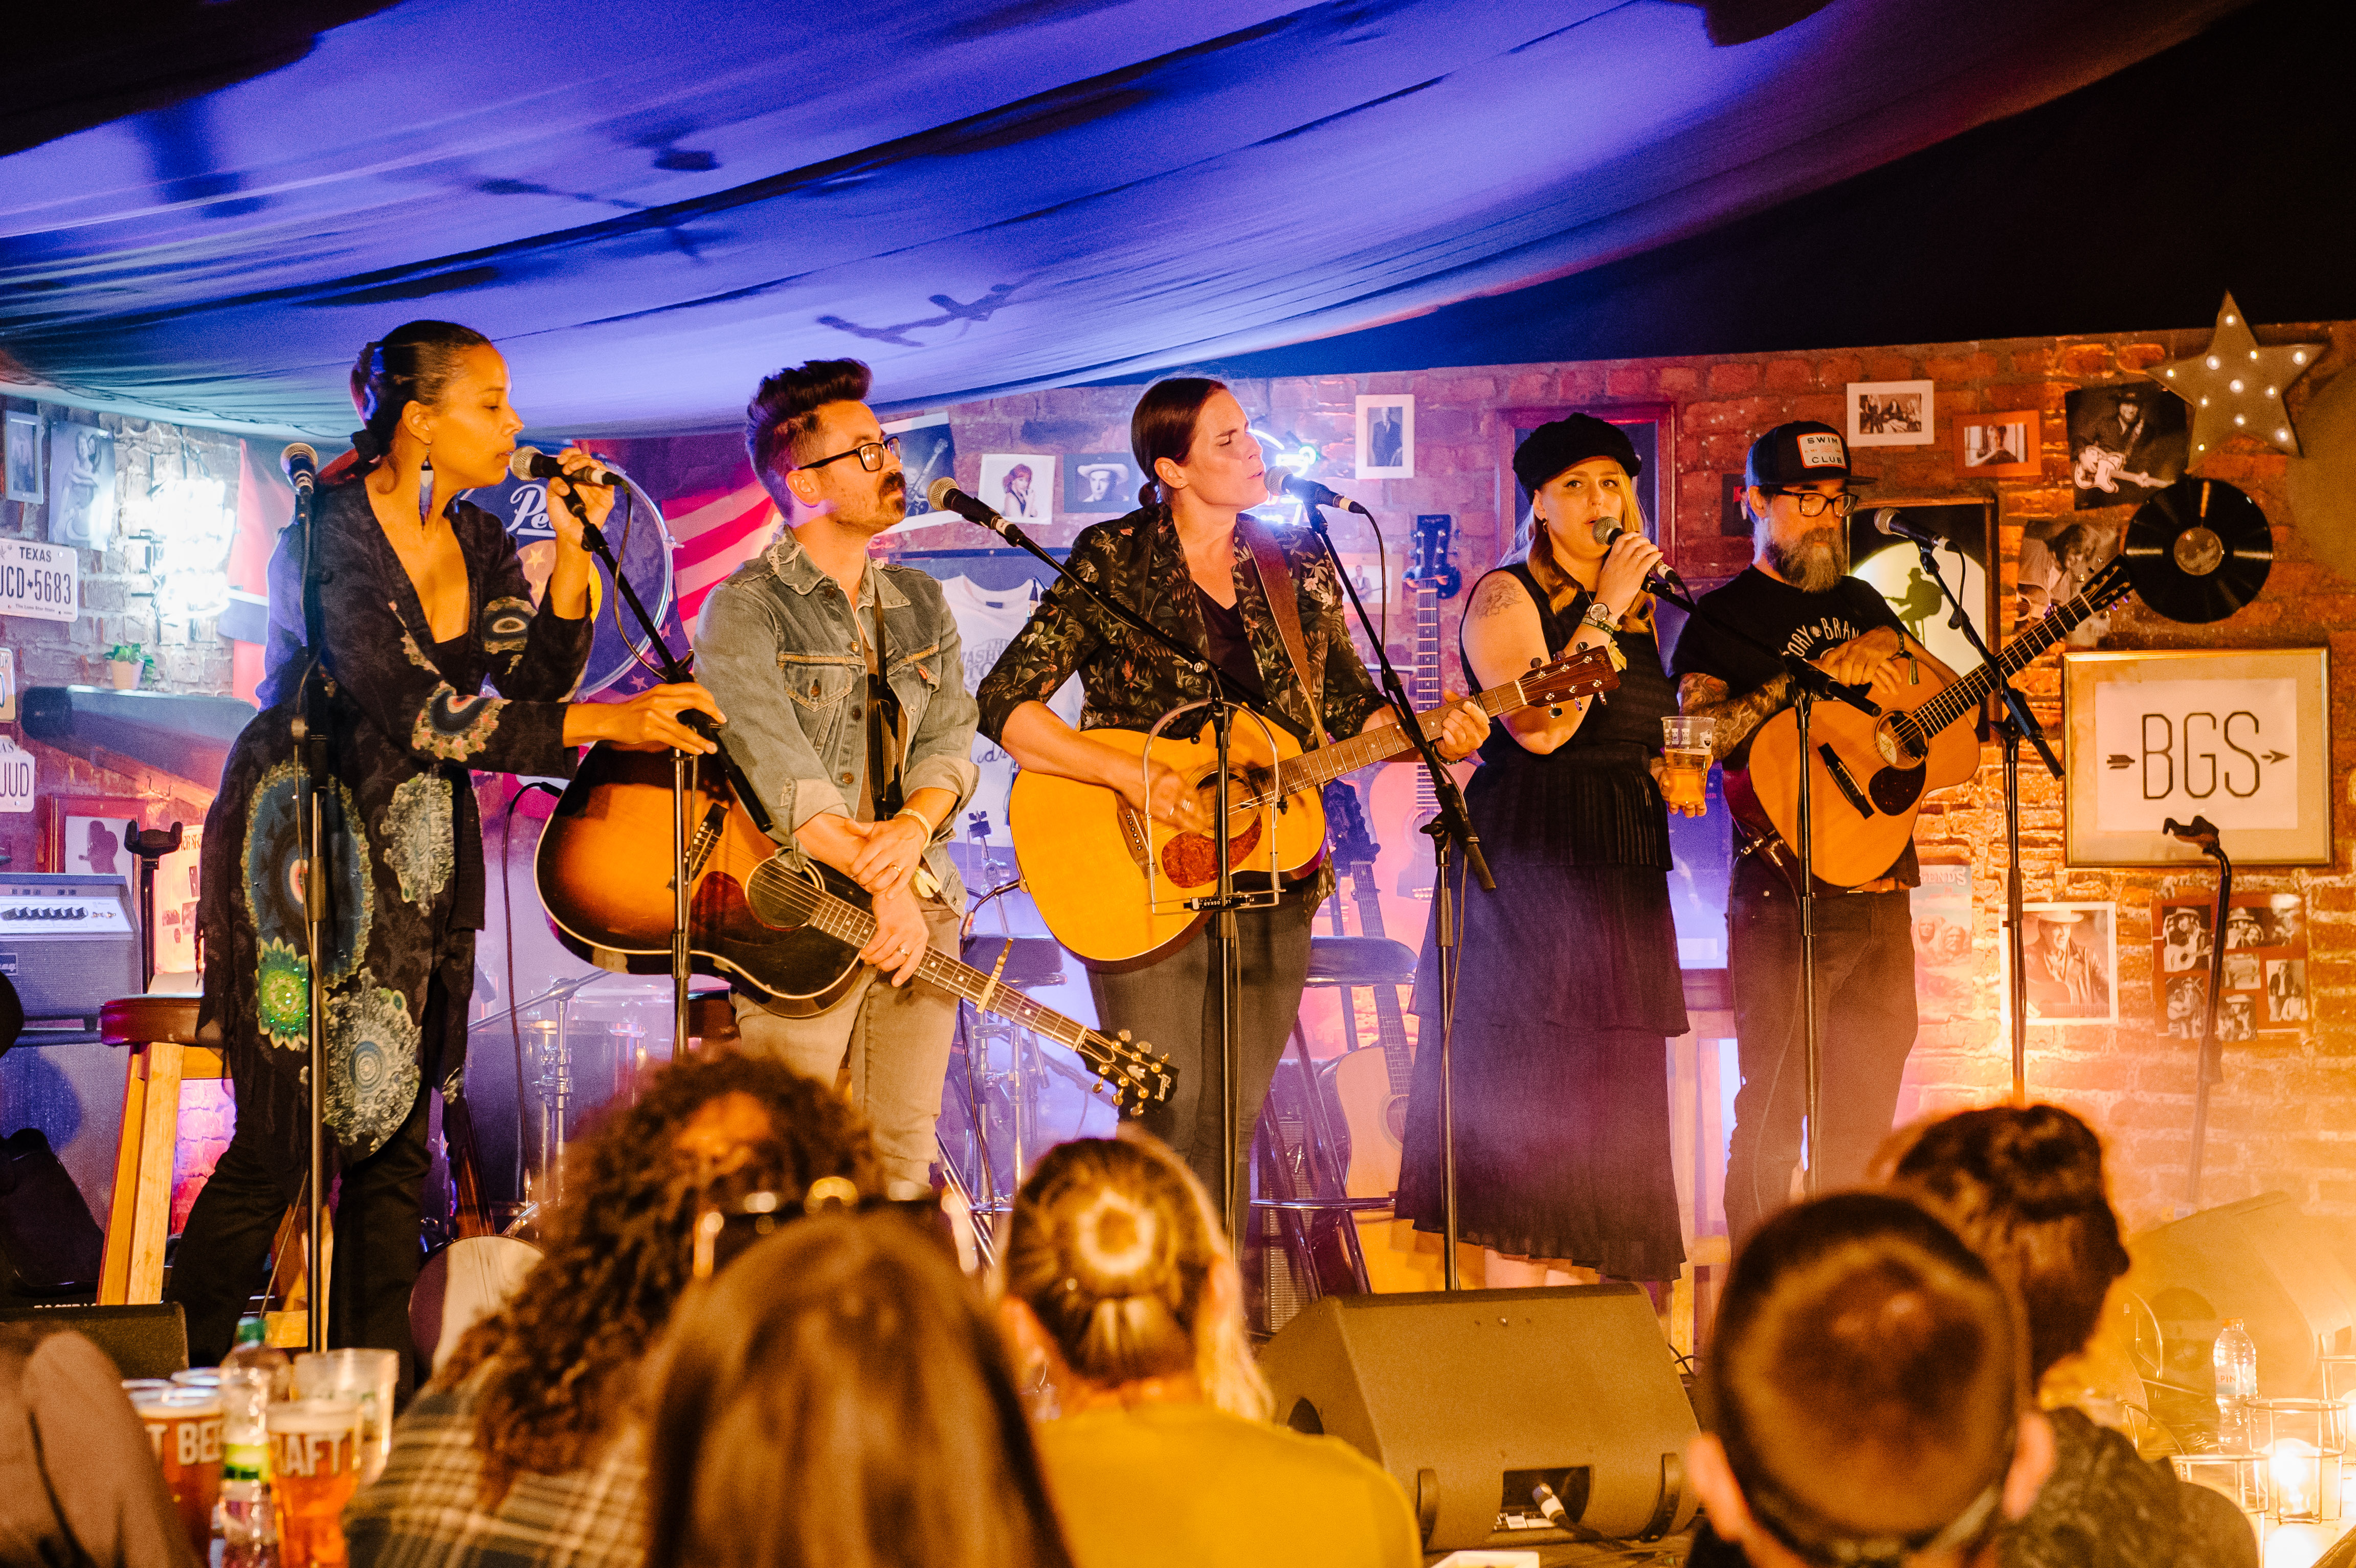 BGS Songwriters Parlour at The Long Road 2019 in Photographs